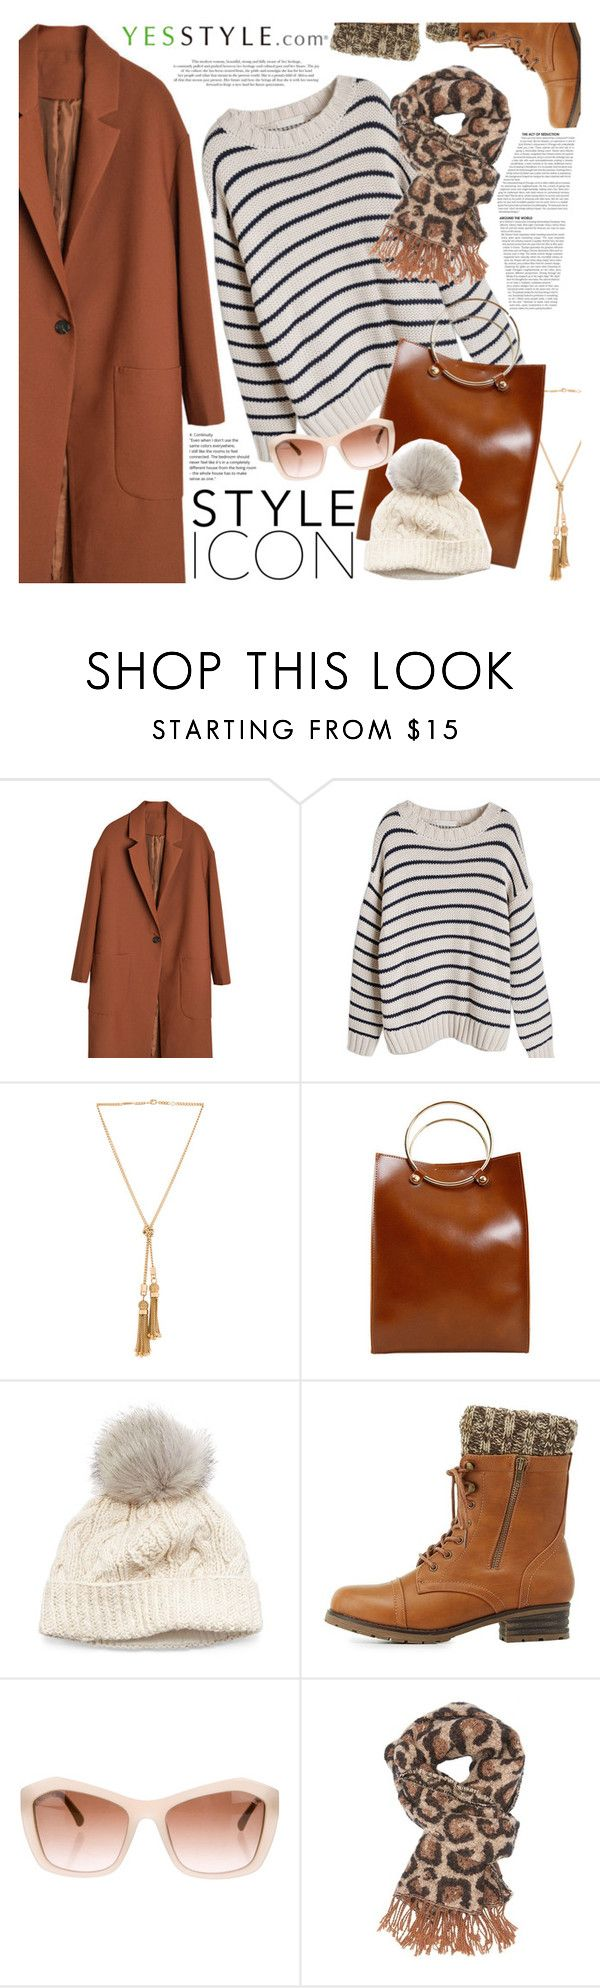 """My kind of style"" by vanjazivadinovic ❤ liked on Polyvore featuring Chloé, SIJJL, Charlotte Russe, Chanel, Fall and yesstyle"